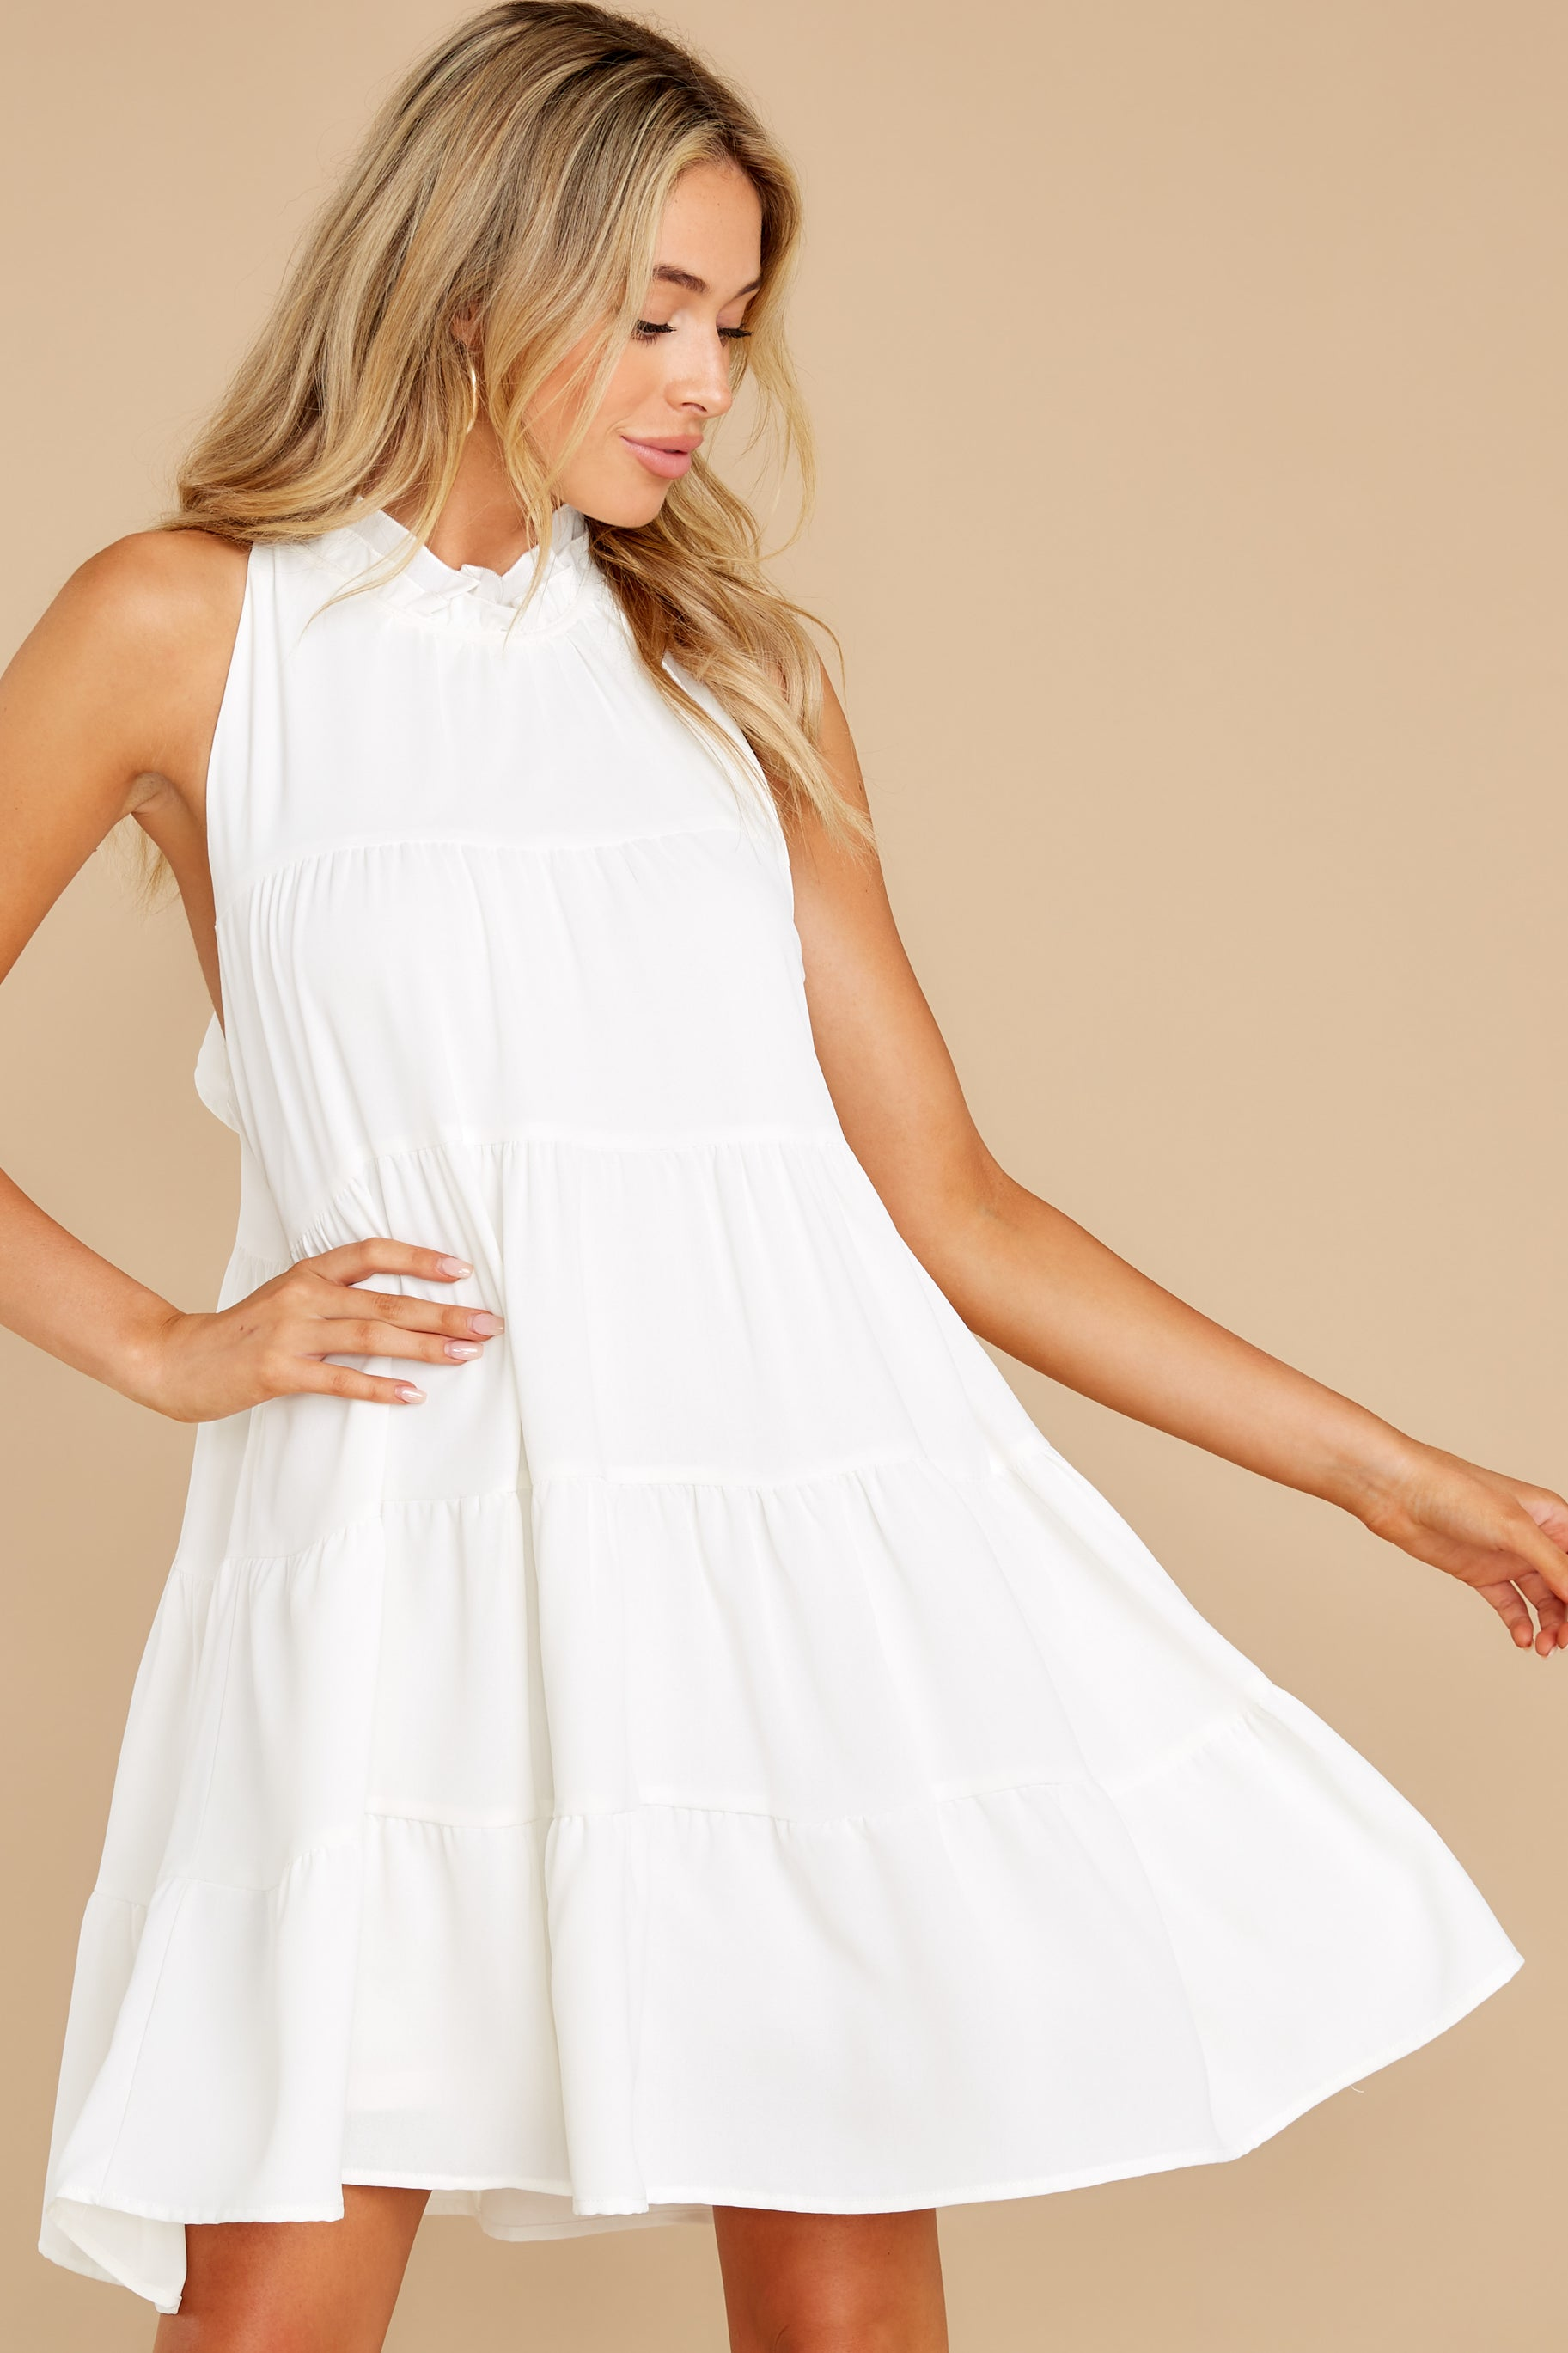 6 Cut To The Chase Off White Dress at reddress.com